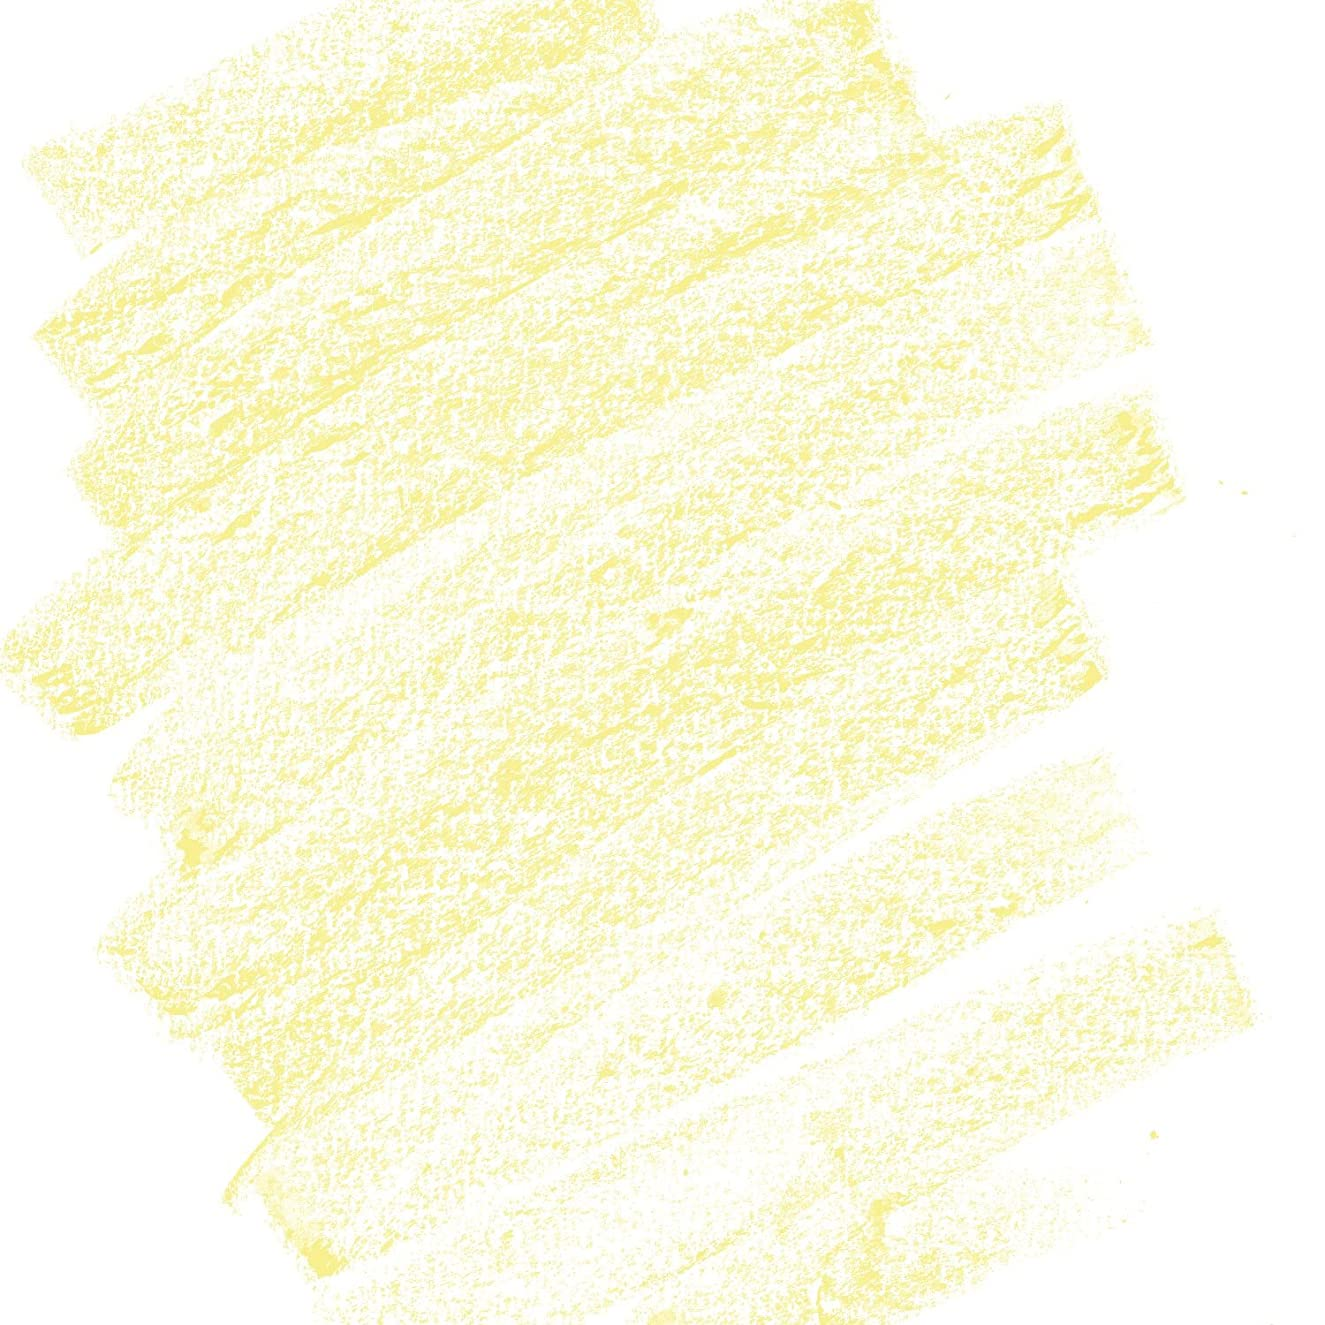 Chartpak 17008079 Pastels 2 Light, Yellow